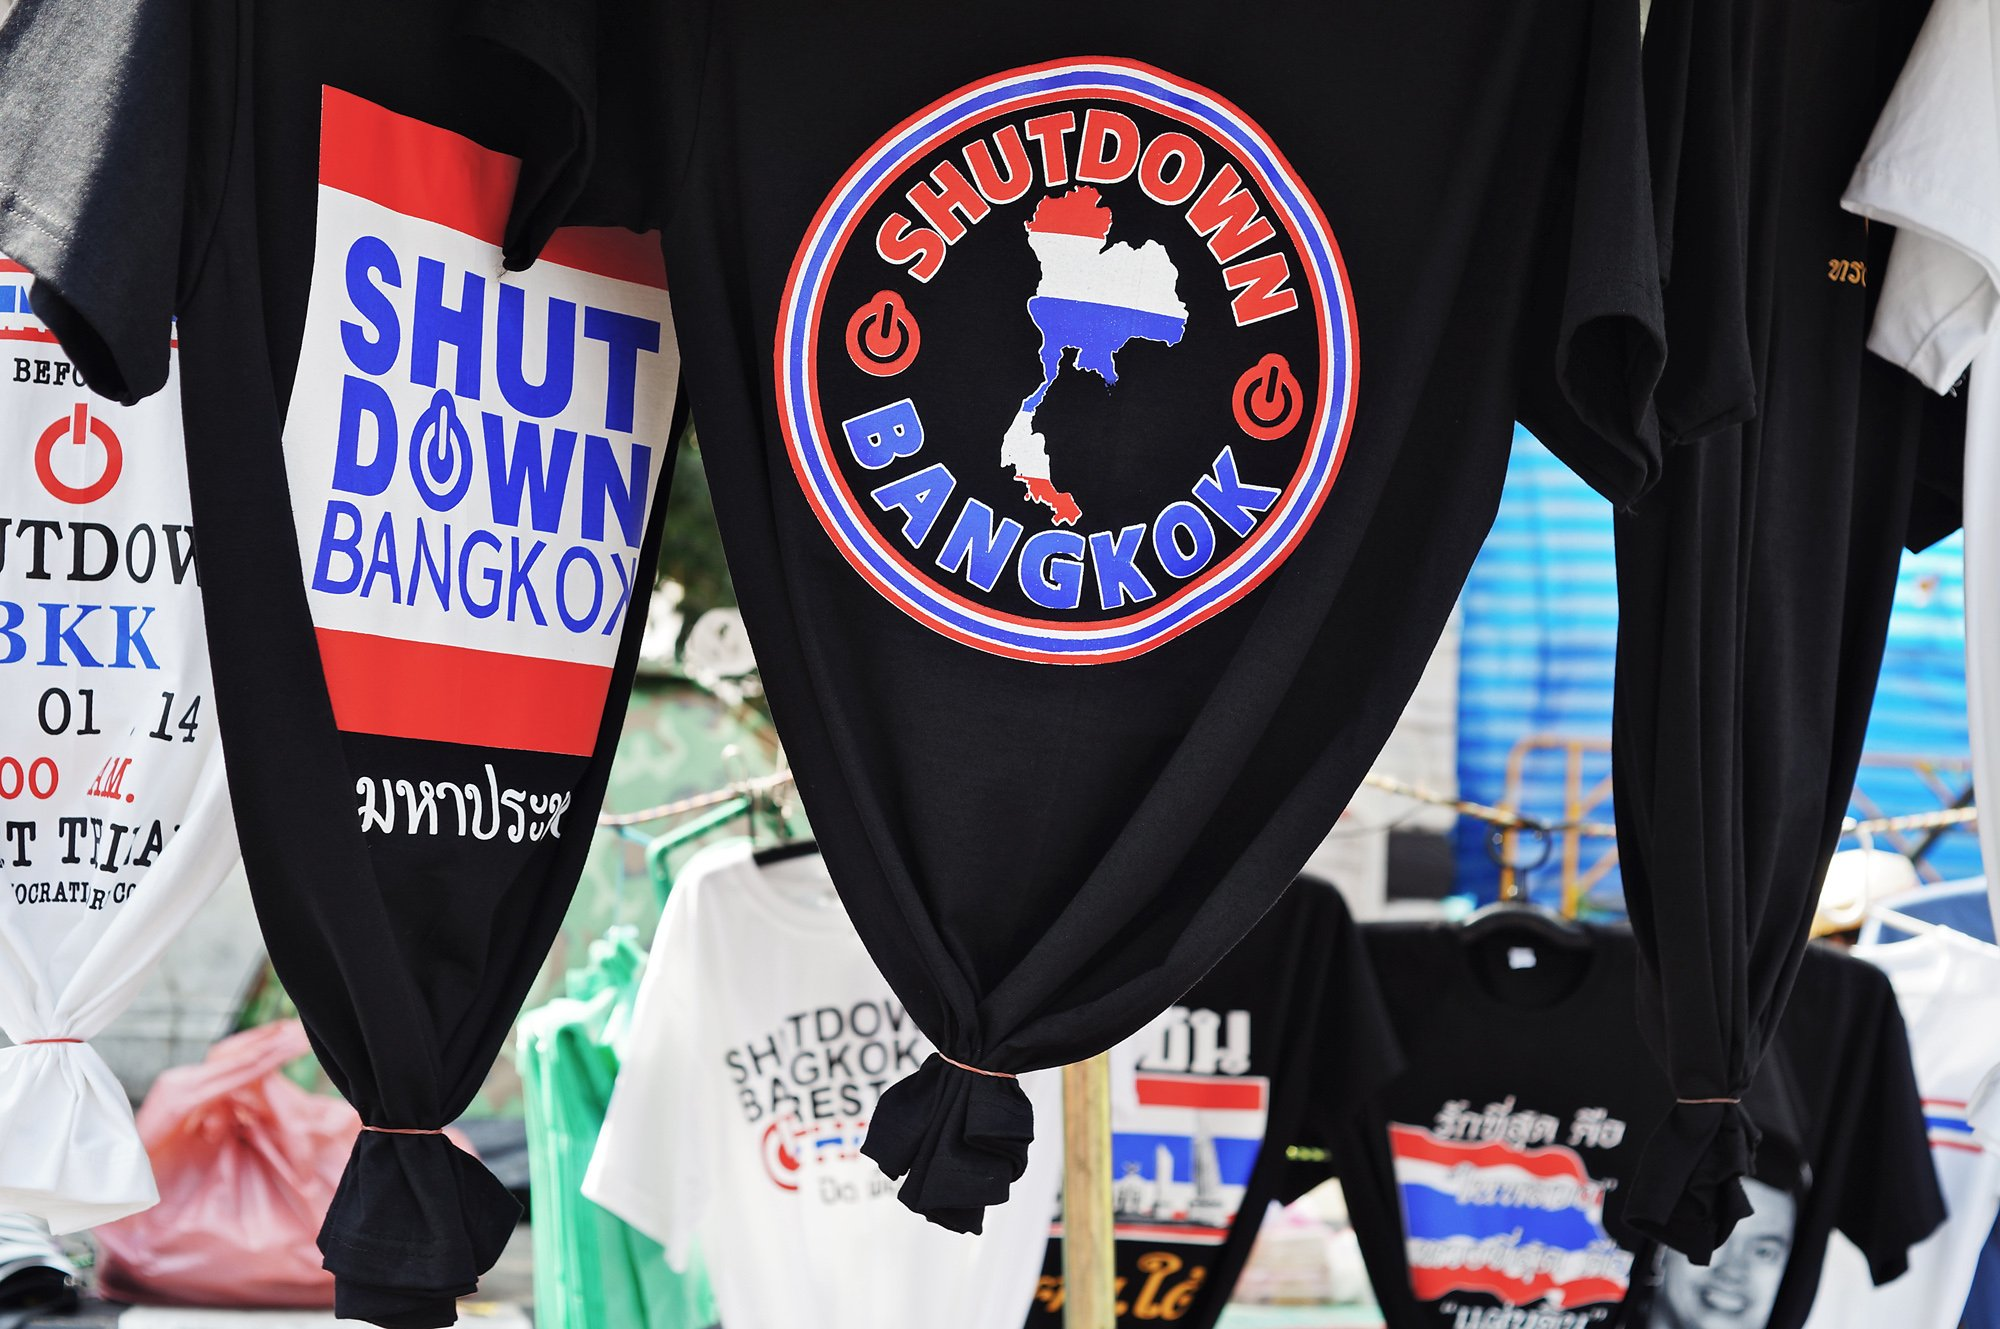 shutdown bangkok t shirt